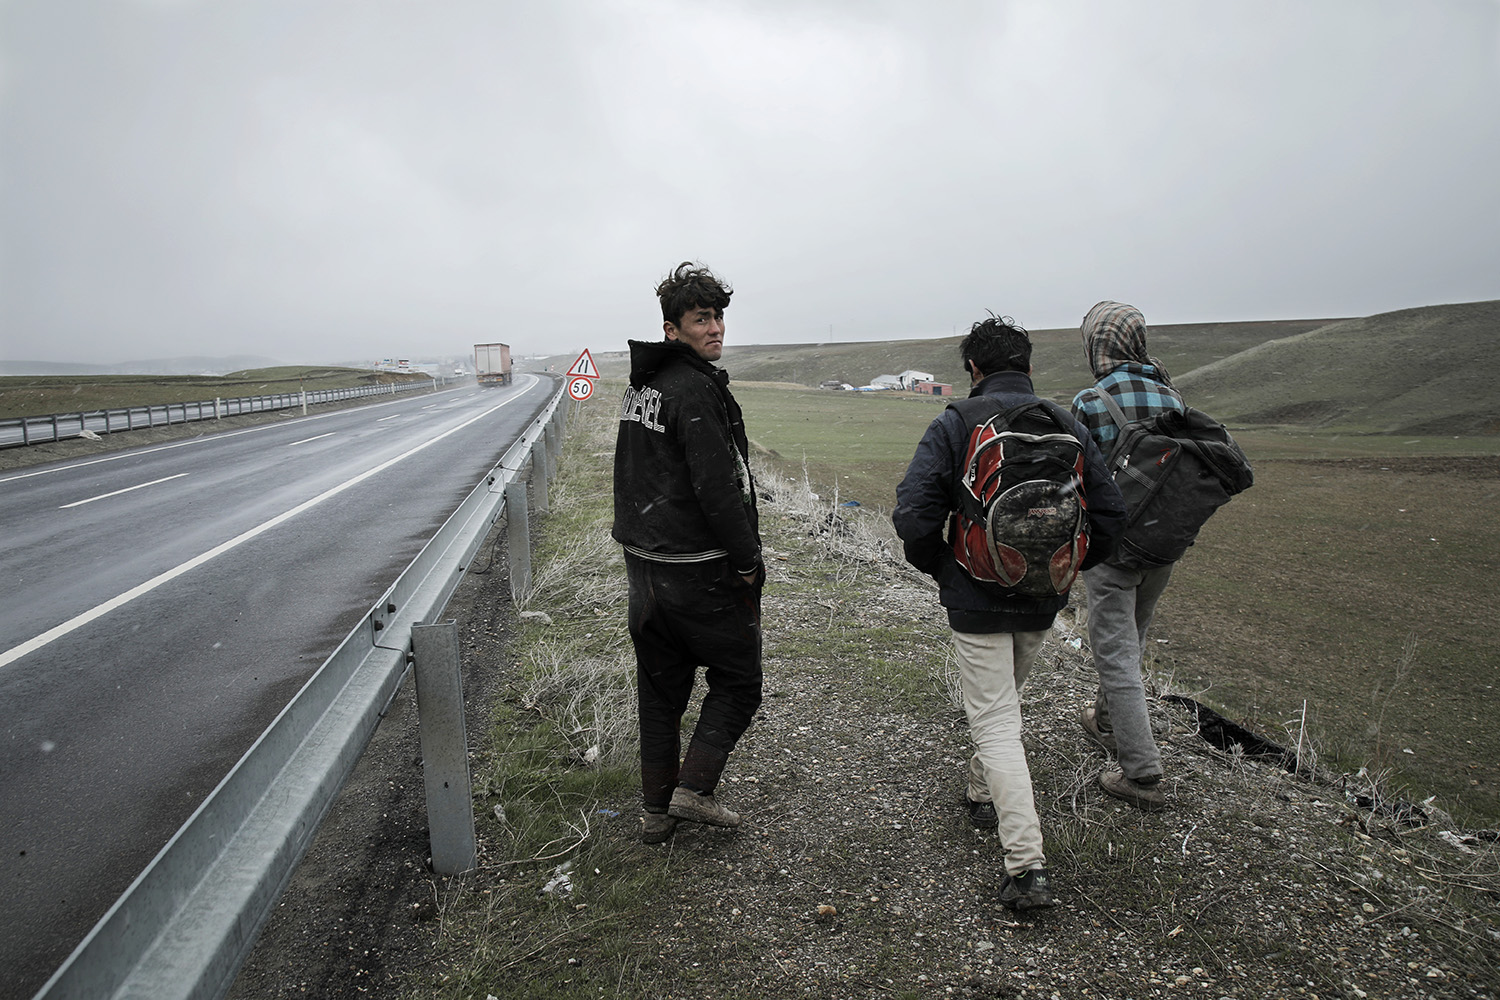 Afghan men walk along the highway between the Turkish cities of Dogubayazit and Agri, in eastern Turkey, near the border with Iran on April 22, 2019. After crossing the border, they were unable to obtain proper documentation that would allow them to ride public transportation, forcing them to walk for hours or days as they travel toward Istanbul on their way to Europe.